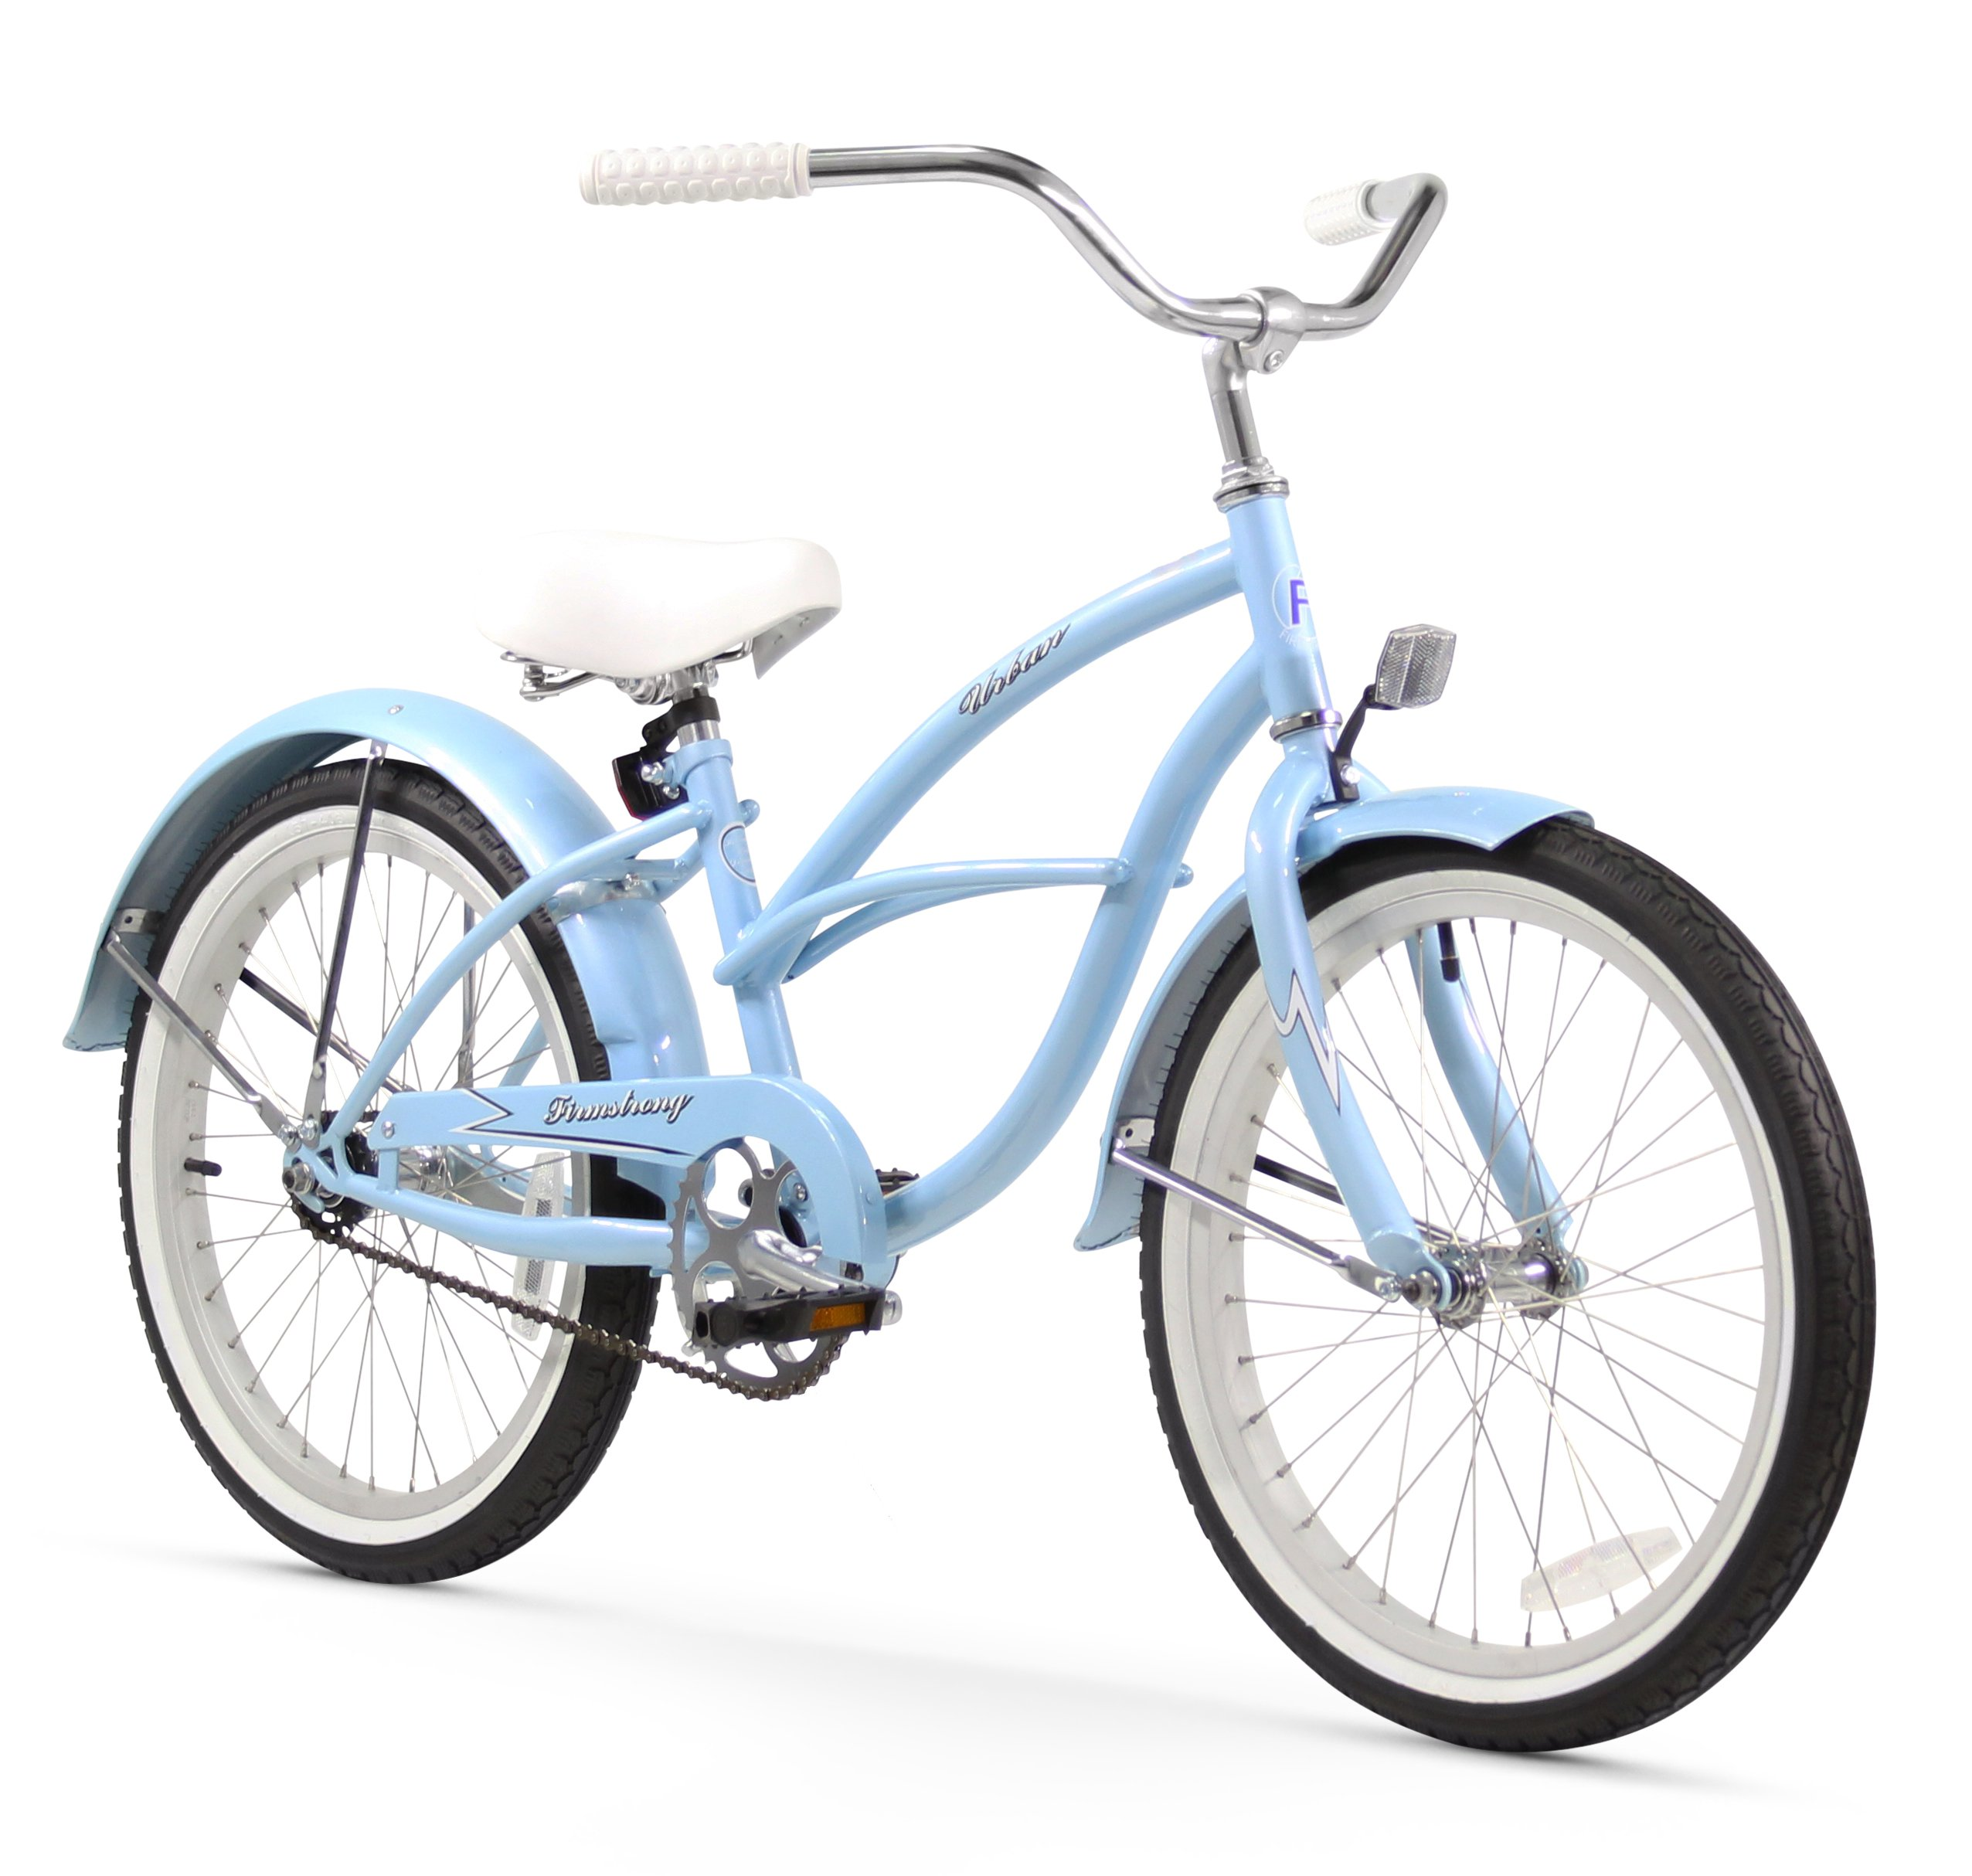 Firmstrong Urban Girl Single Speed Beach Cruiser Bicycle, 20-Inch, Baby Blue